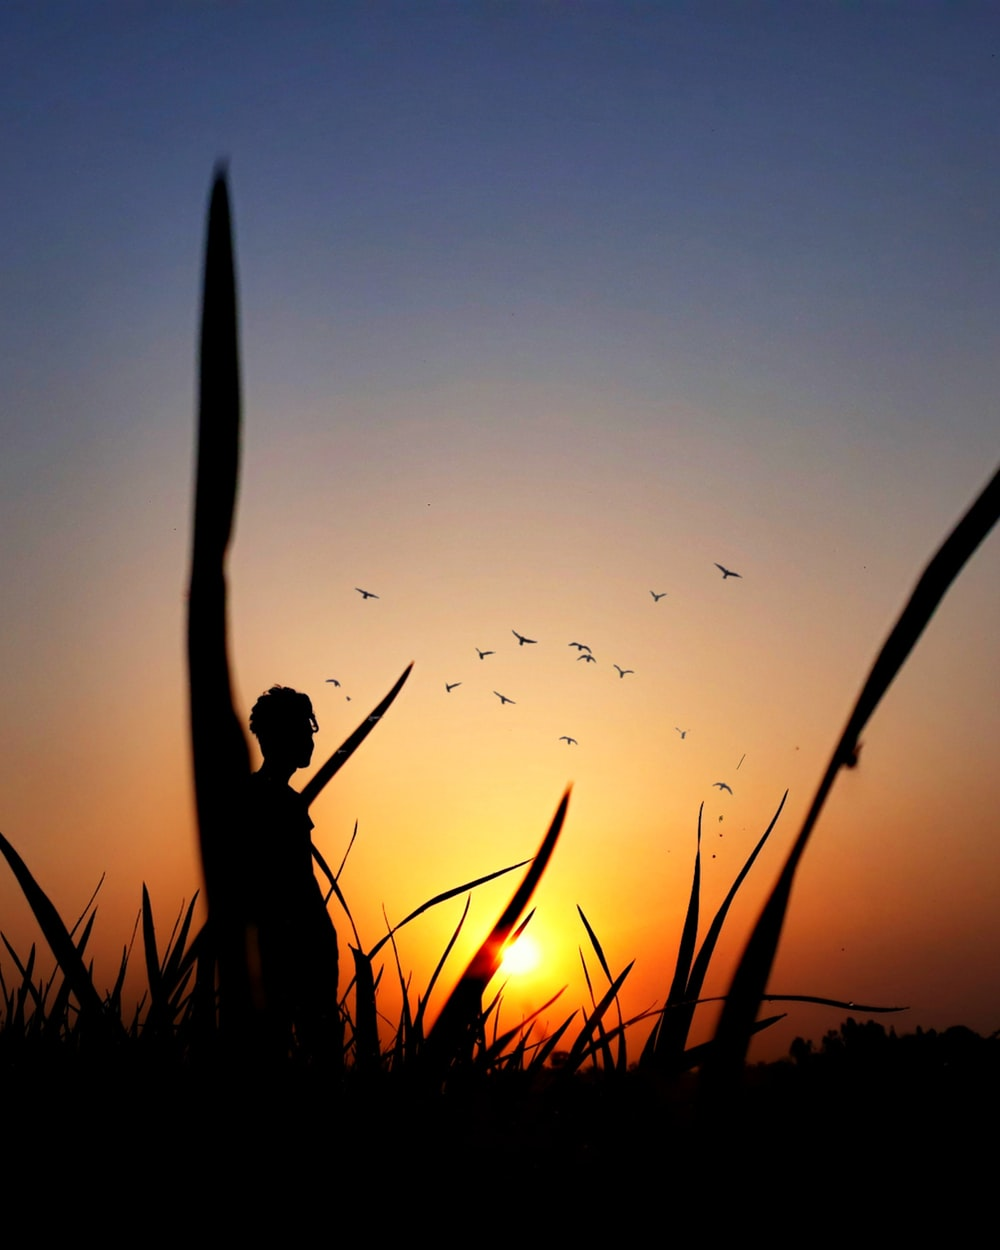 silhouette of man standing on grass